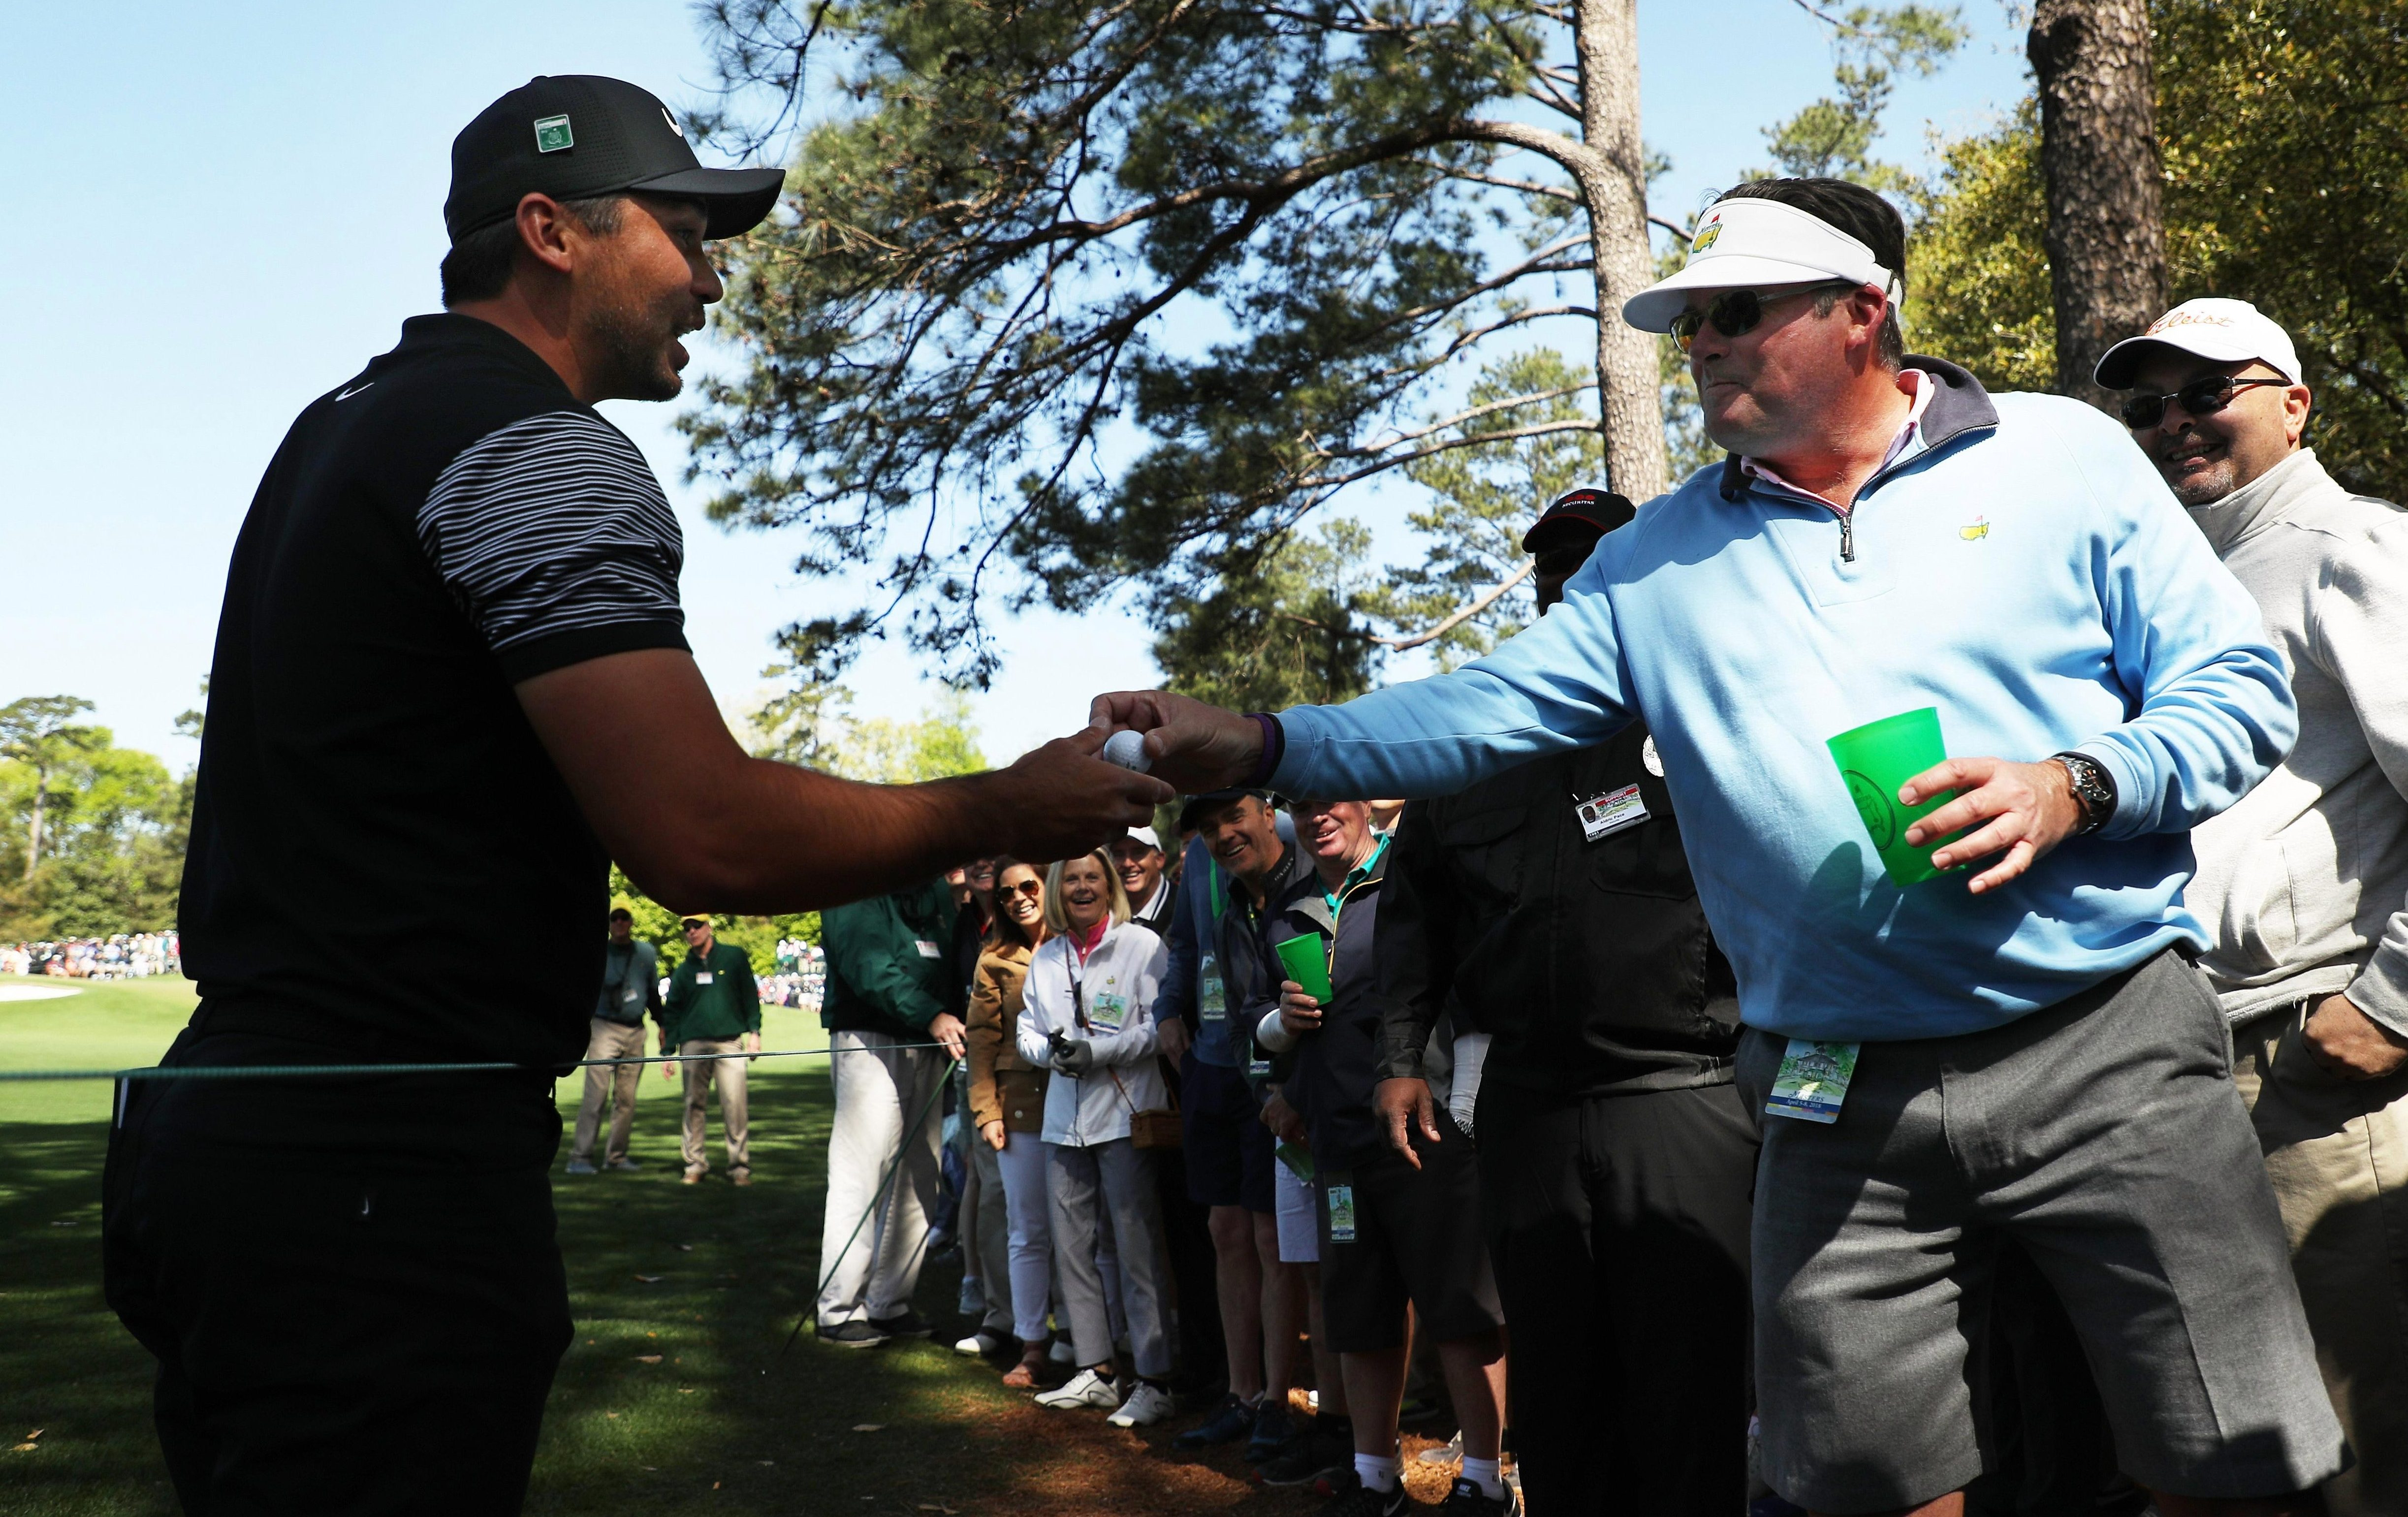 Jason Day gets his ball back after hitting into a fan's cup on the first hole